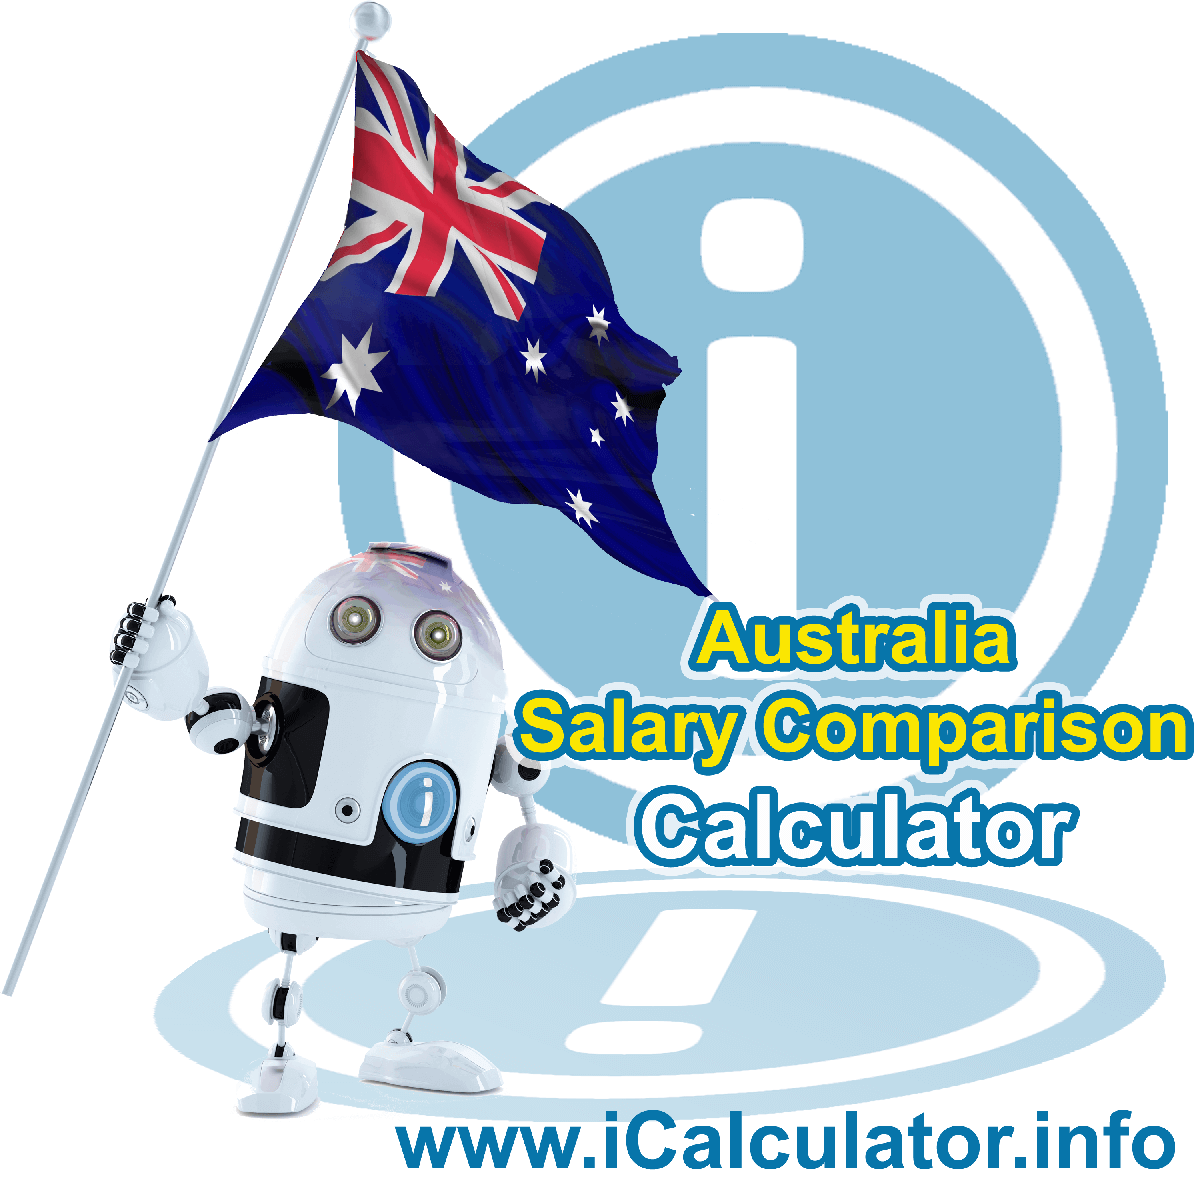 Australia Weekly Salary Comparison Calculator. This image shows the Australia flag and information relating to the income tax formula for the Australia Weekly Salary Comparison Calculator